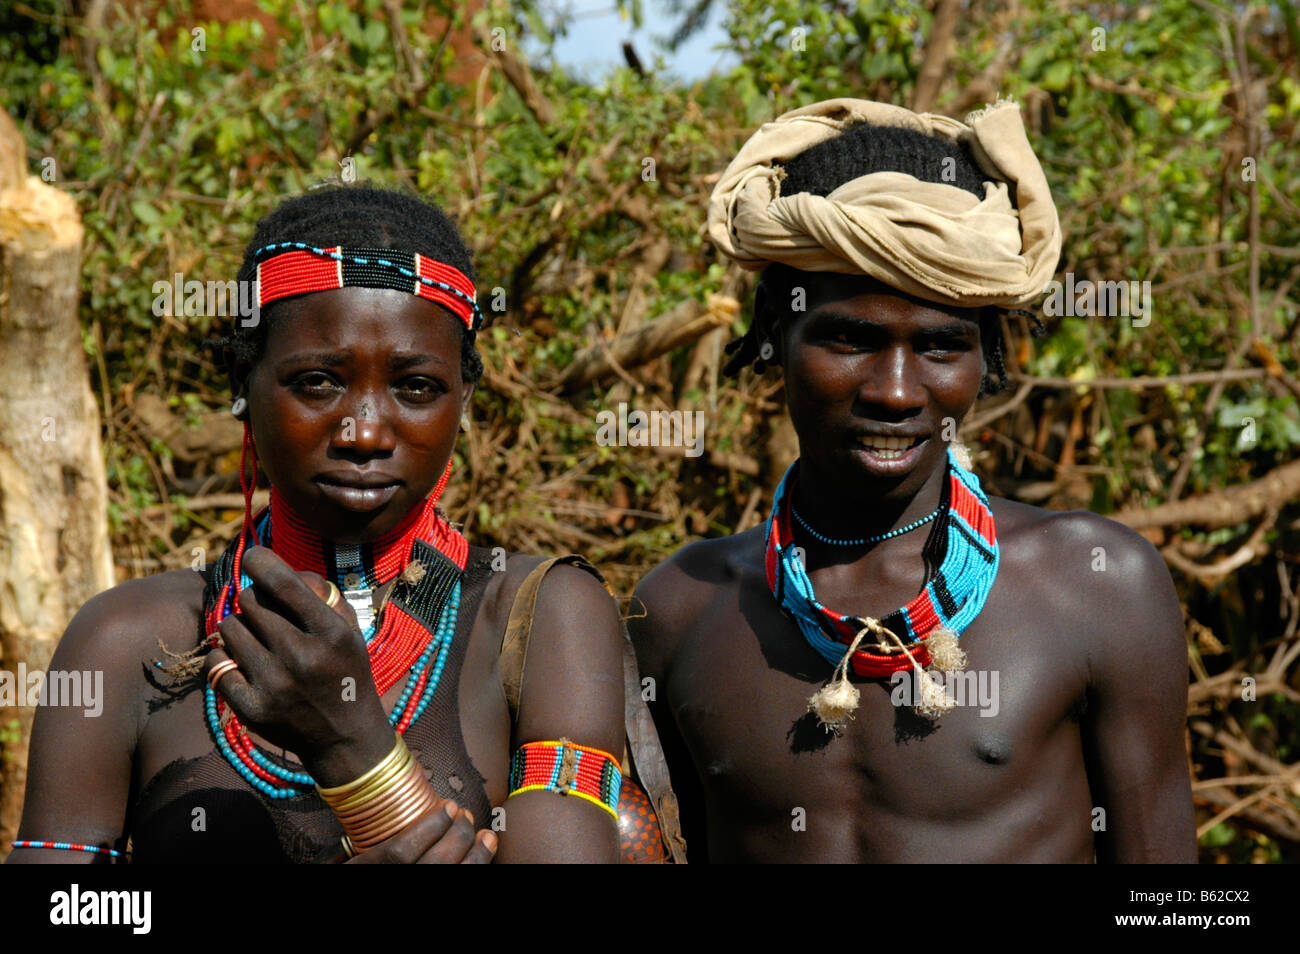 Portrait of a couple, colourful jewelry, Keyafer, Ethiopia, Africa - Stock Image